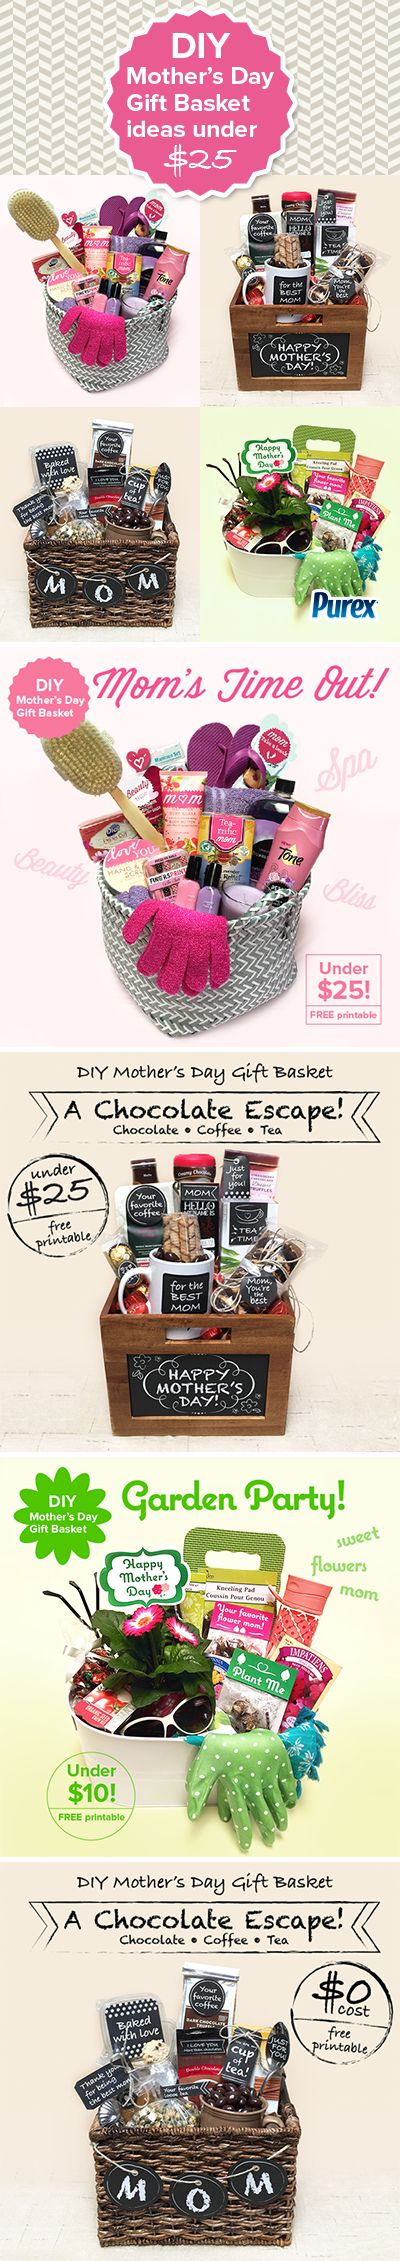 DIY Mothers Day Gift Basket Ideas Under 25